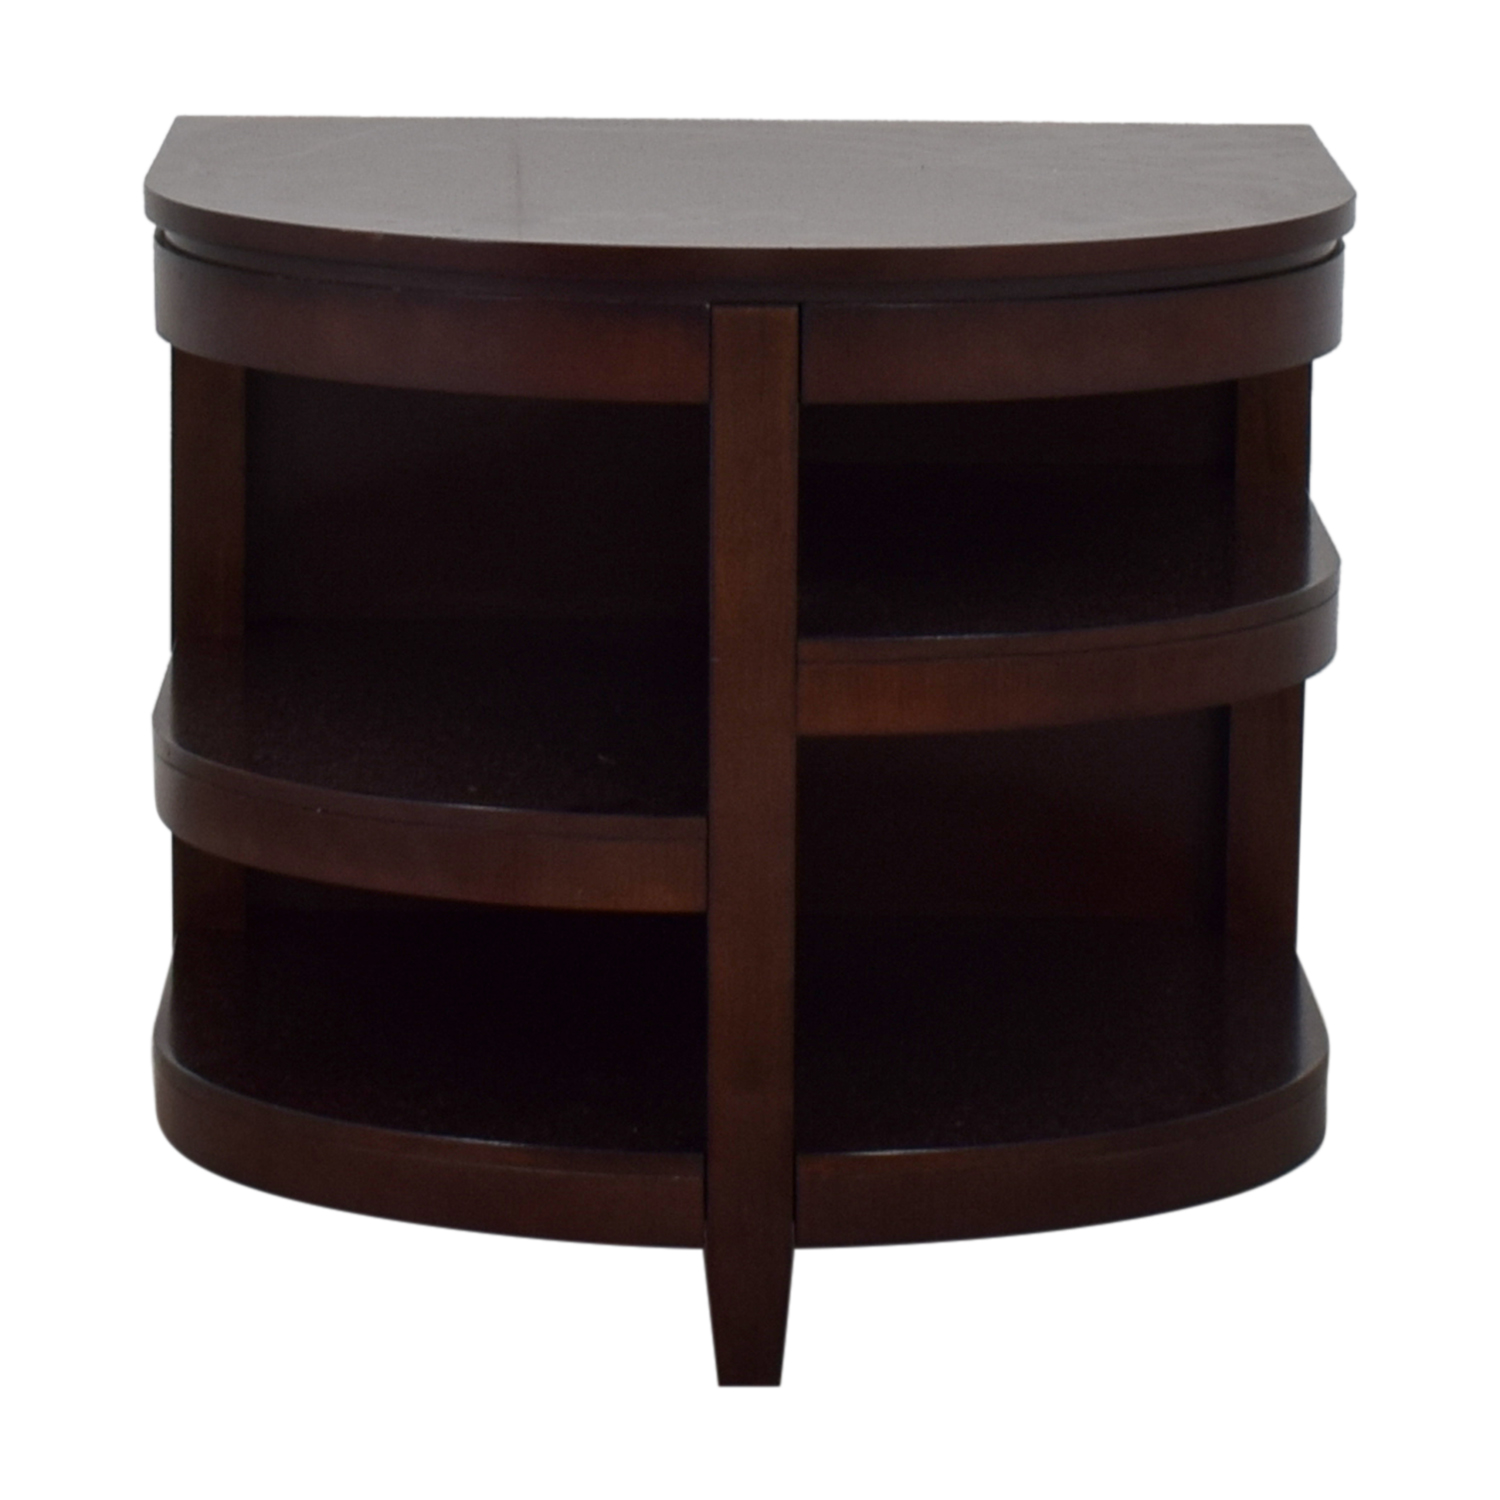 shop Raymour & Flanigan Semi Round Shelved End Table Raymour & Flanigan Tables